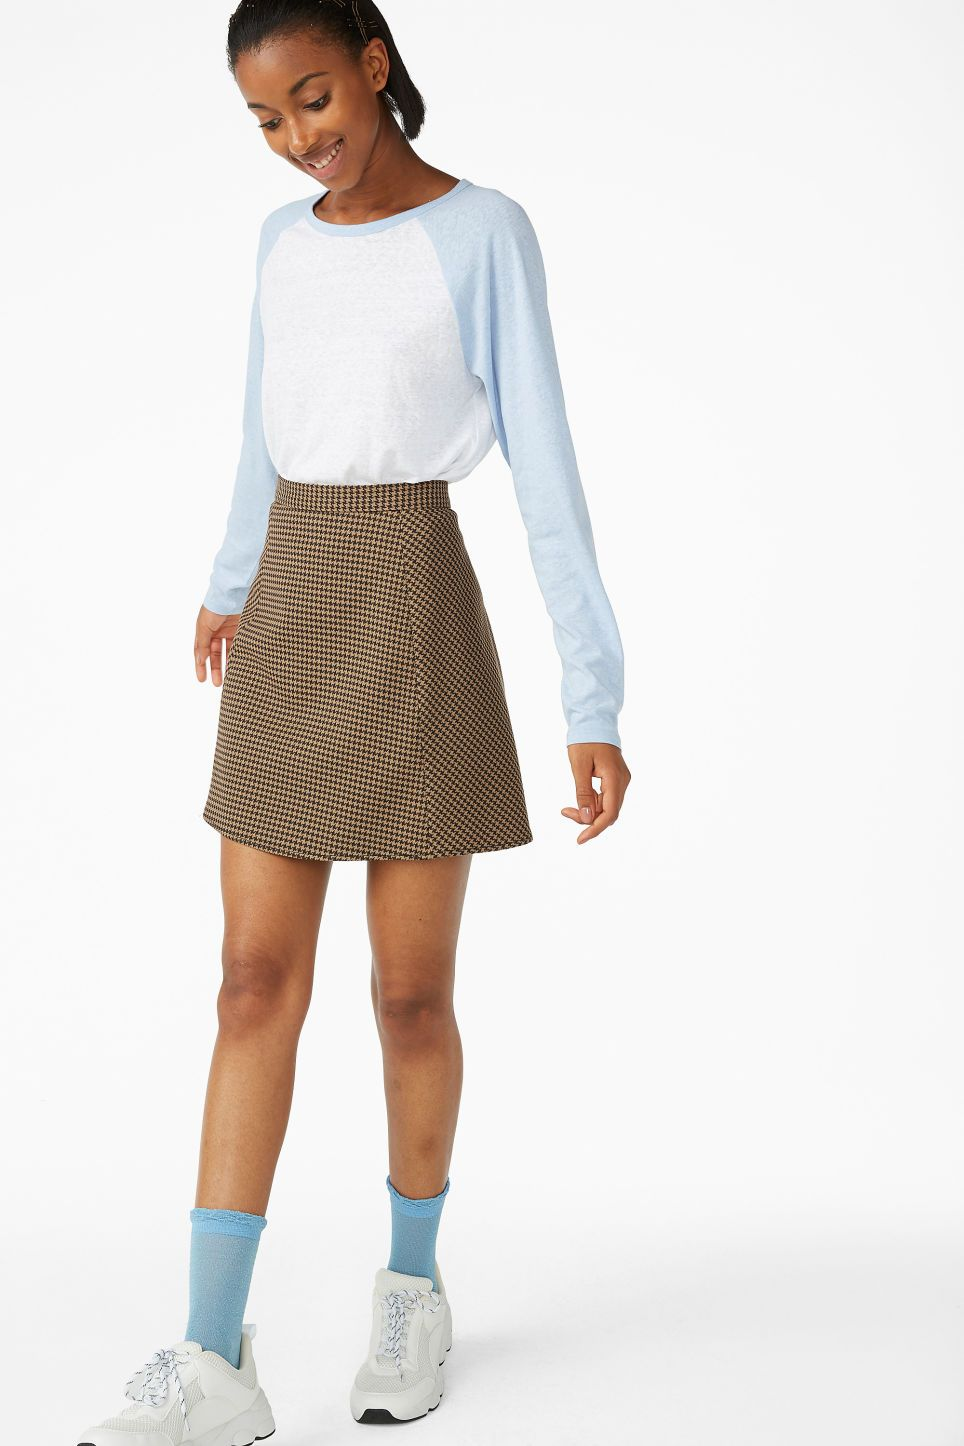 8e895d4bcb Houndstooth mini skirt - Houndstooth - Skirts | AW18 | Houndstooth ...